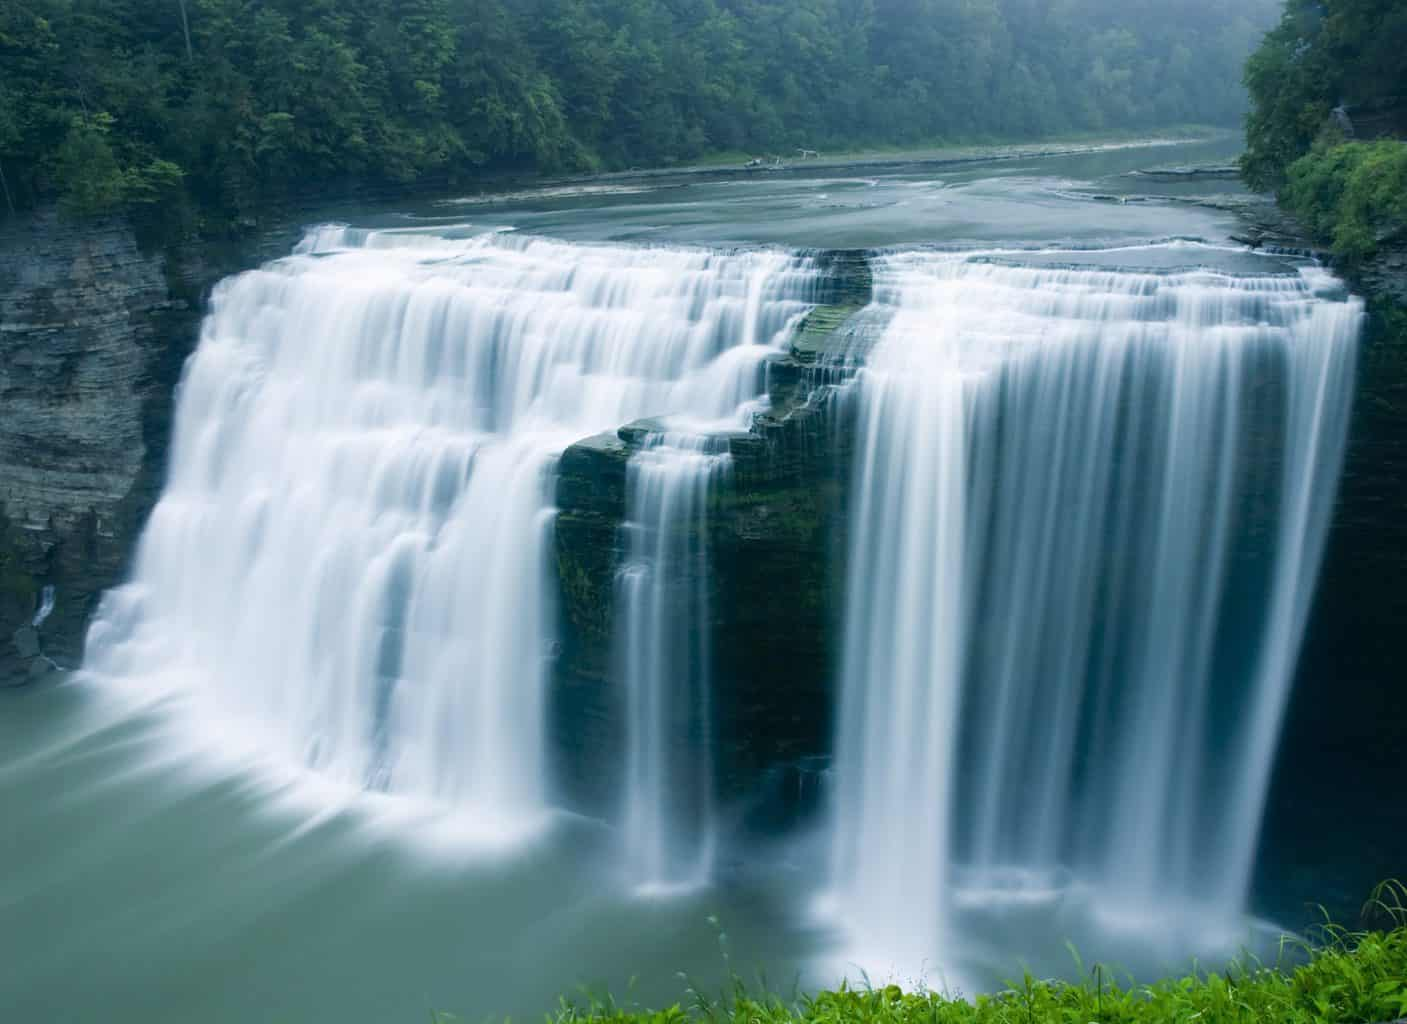 The Middle falls in Letchworth State Park on the Genesee River in NY.